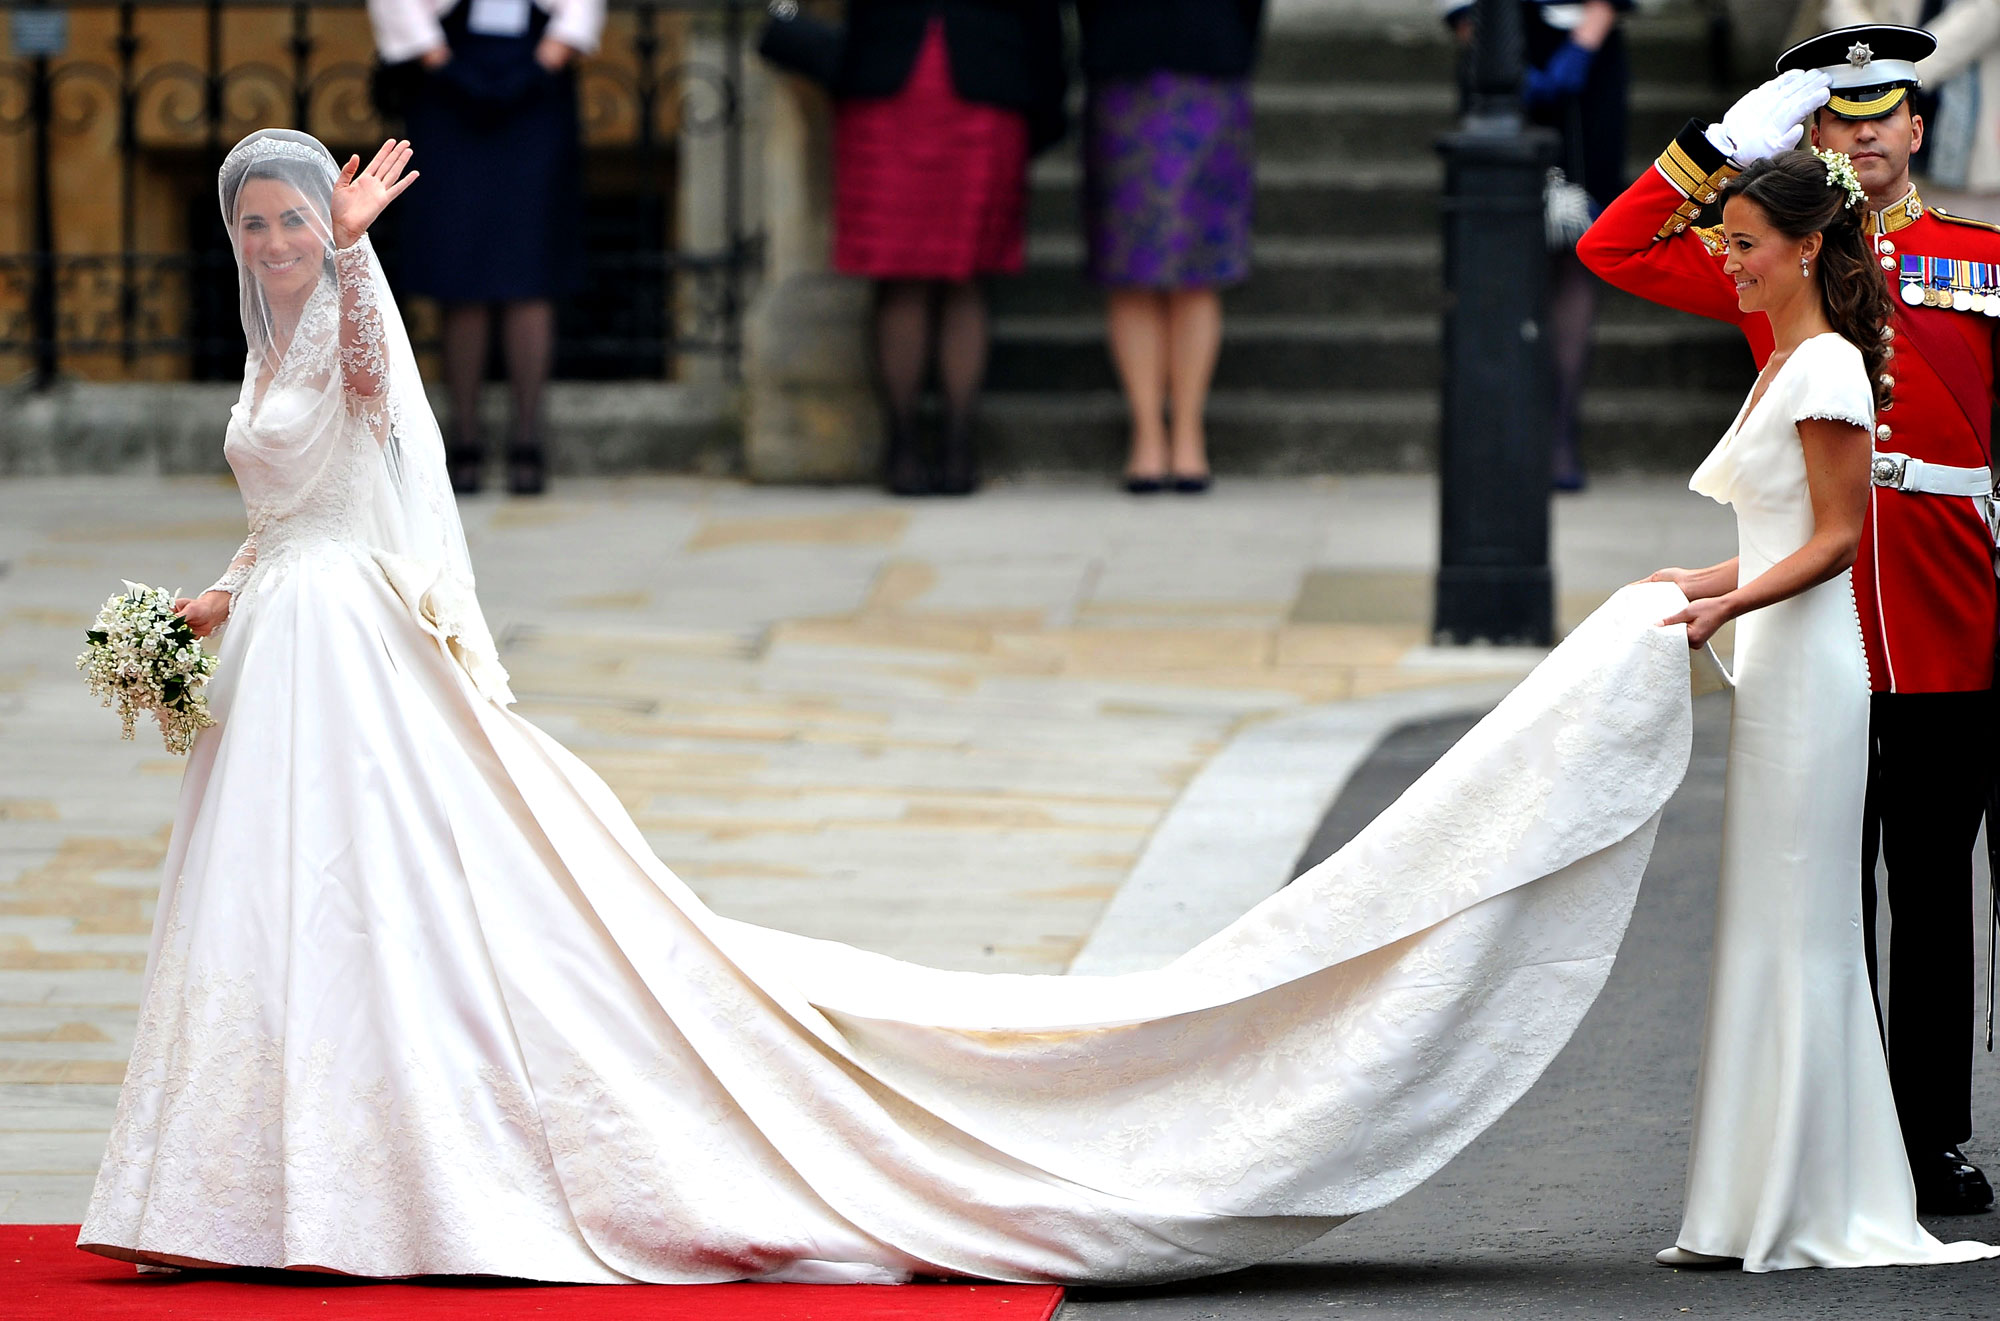 Pippa Middleton Duchess Kate Wedding Royal bridesmaid